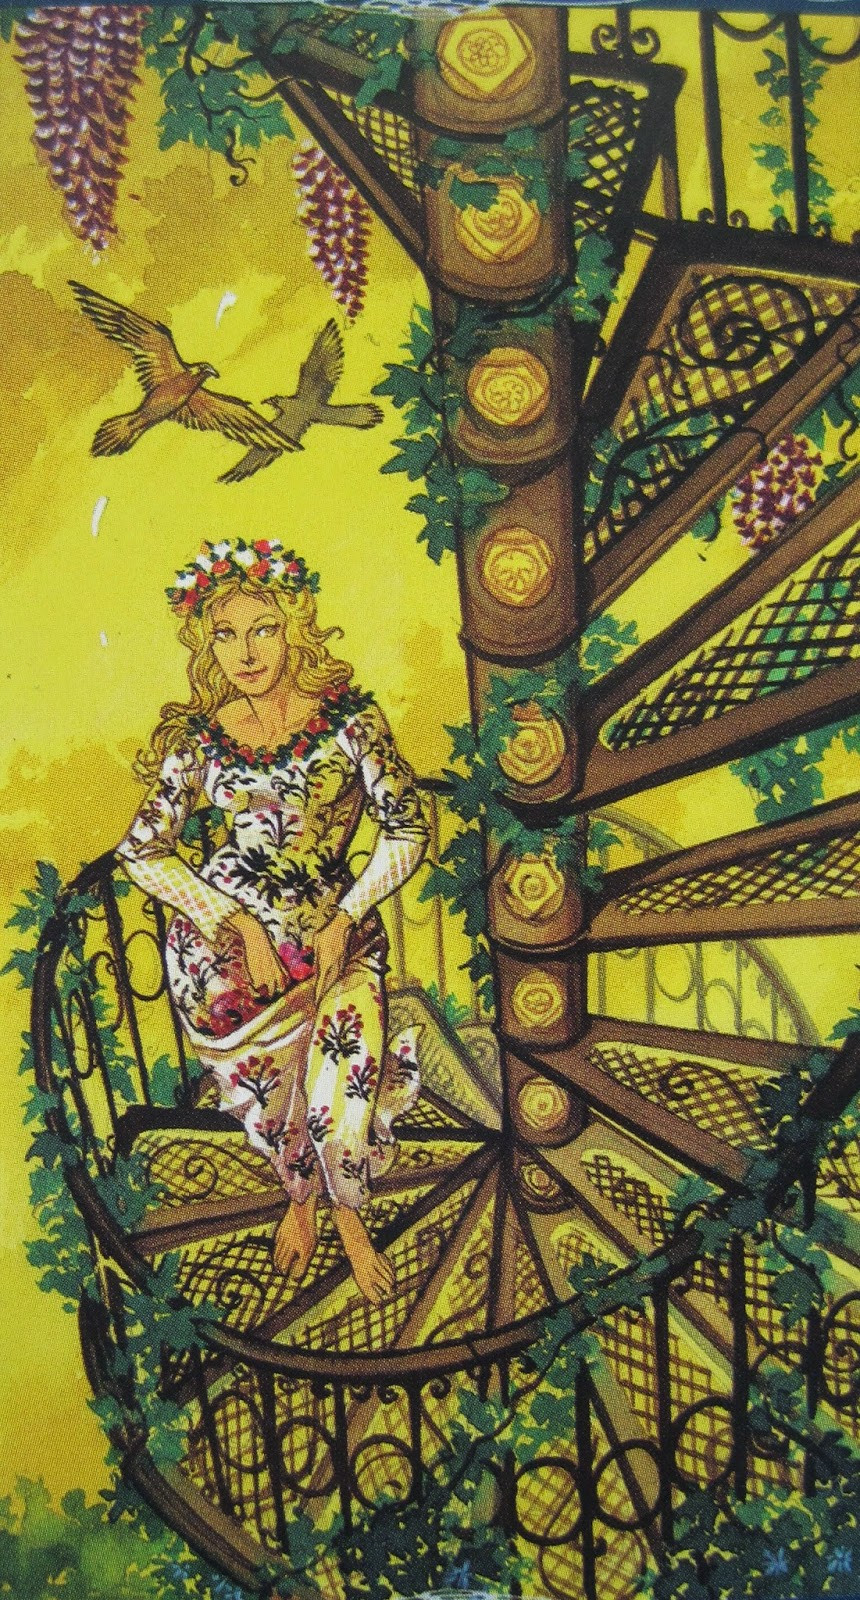 Tarot of the Mystic Spiral. Sometimes the Nine of Pentacles: Venus in Virgo represents doing work that you enjoy.